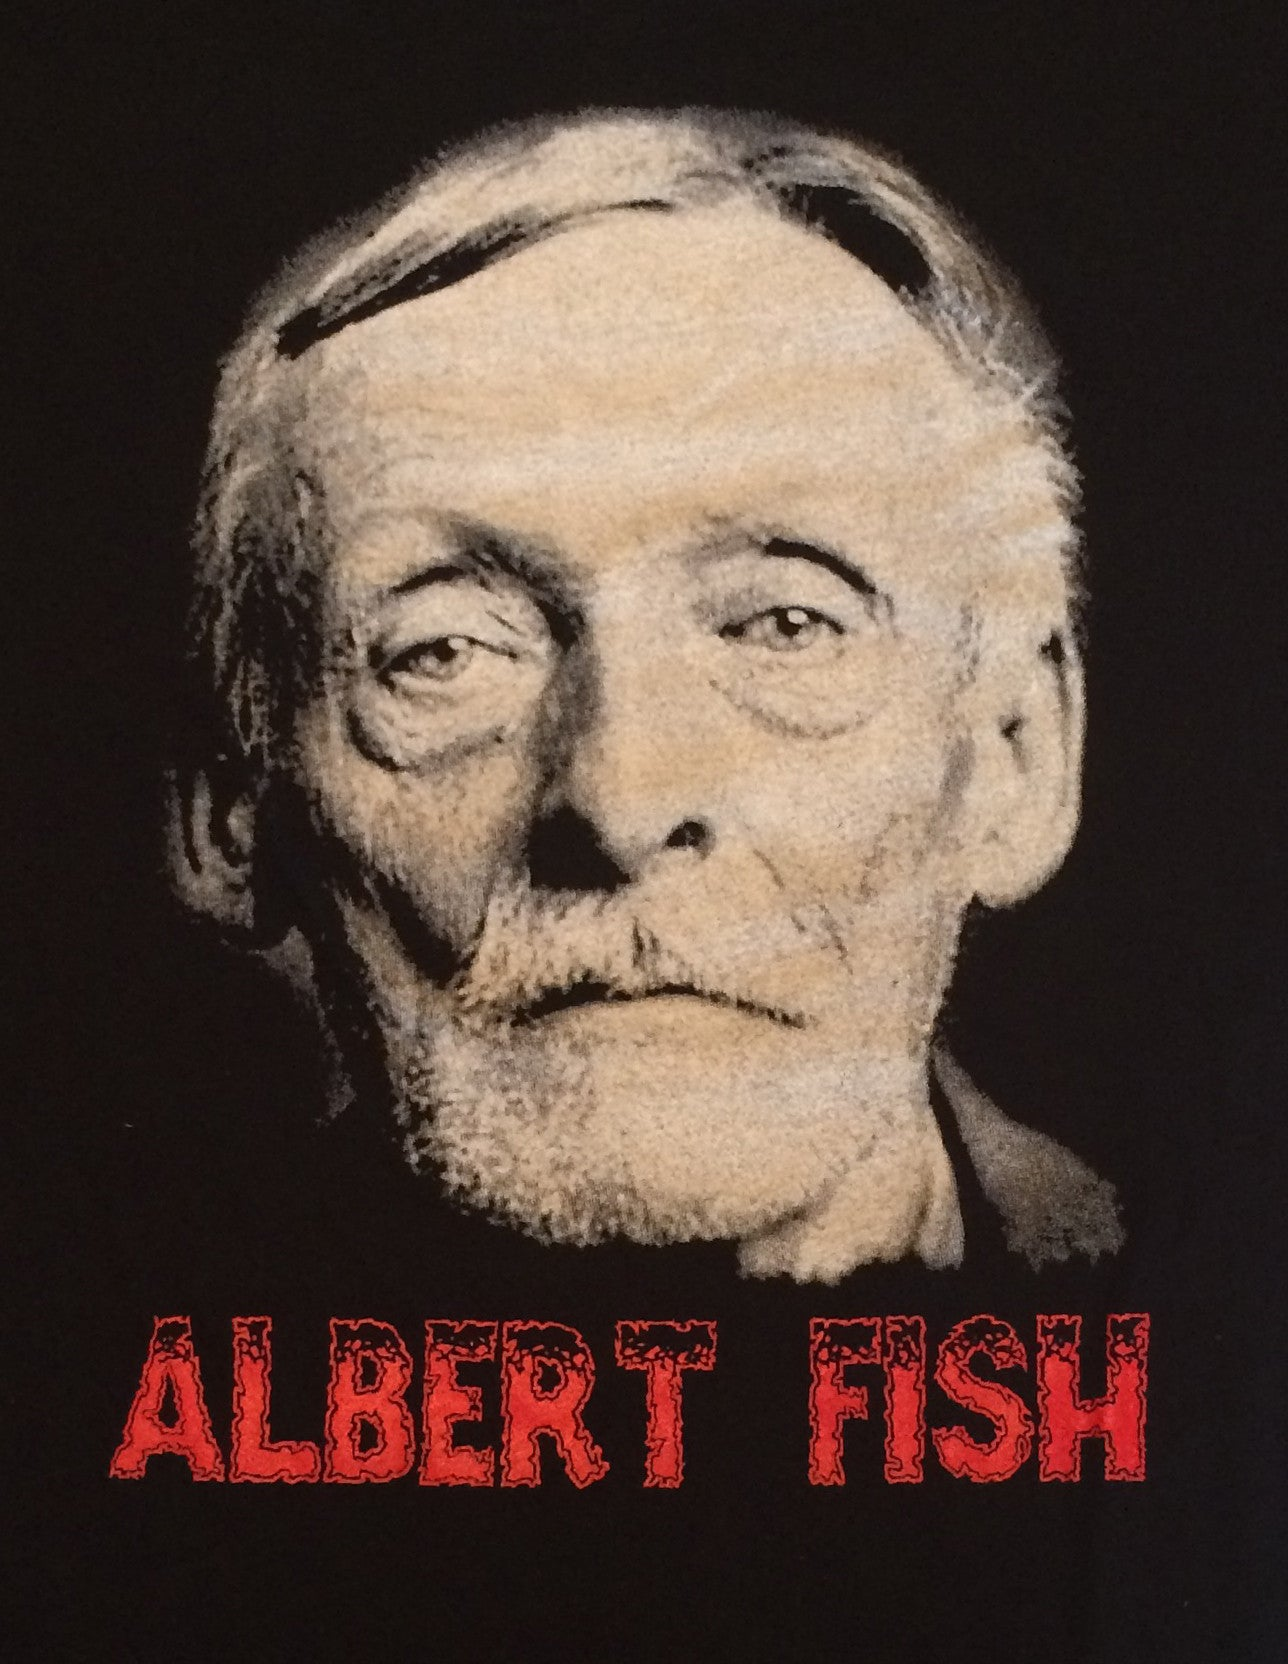 Albert Fish Serial Killer Double Sided Shirt Scream For